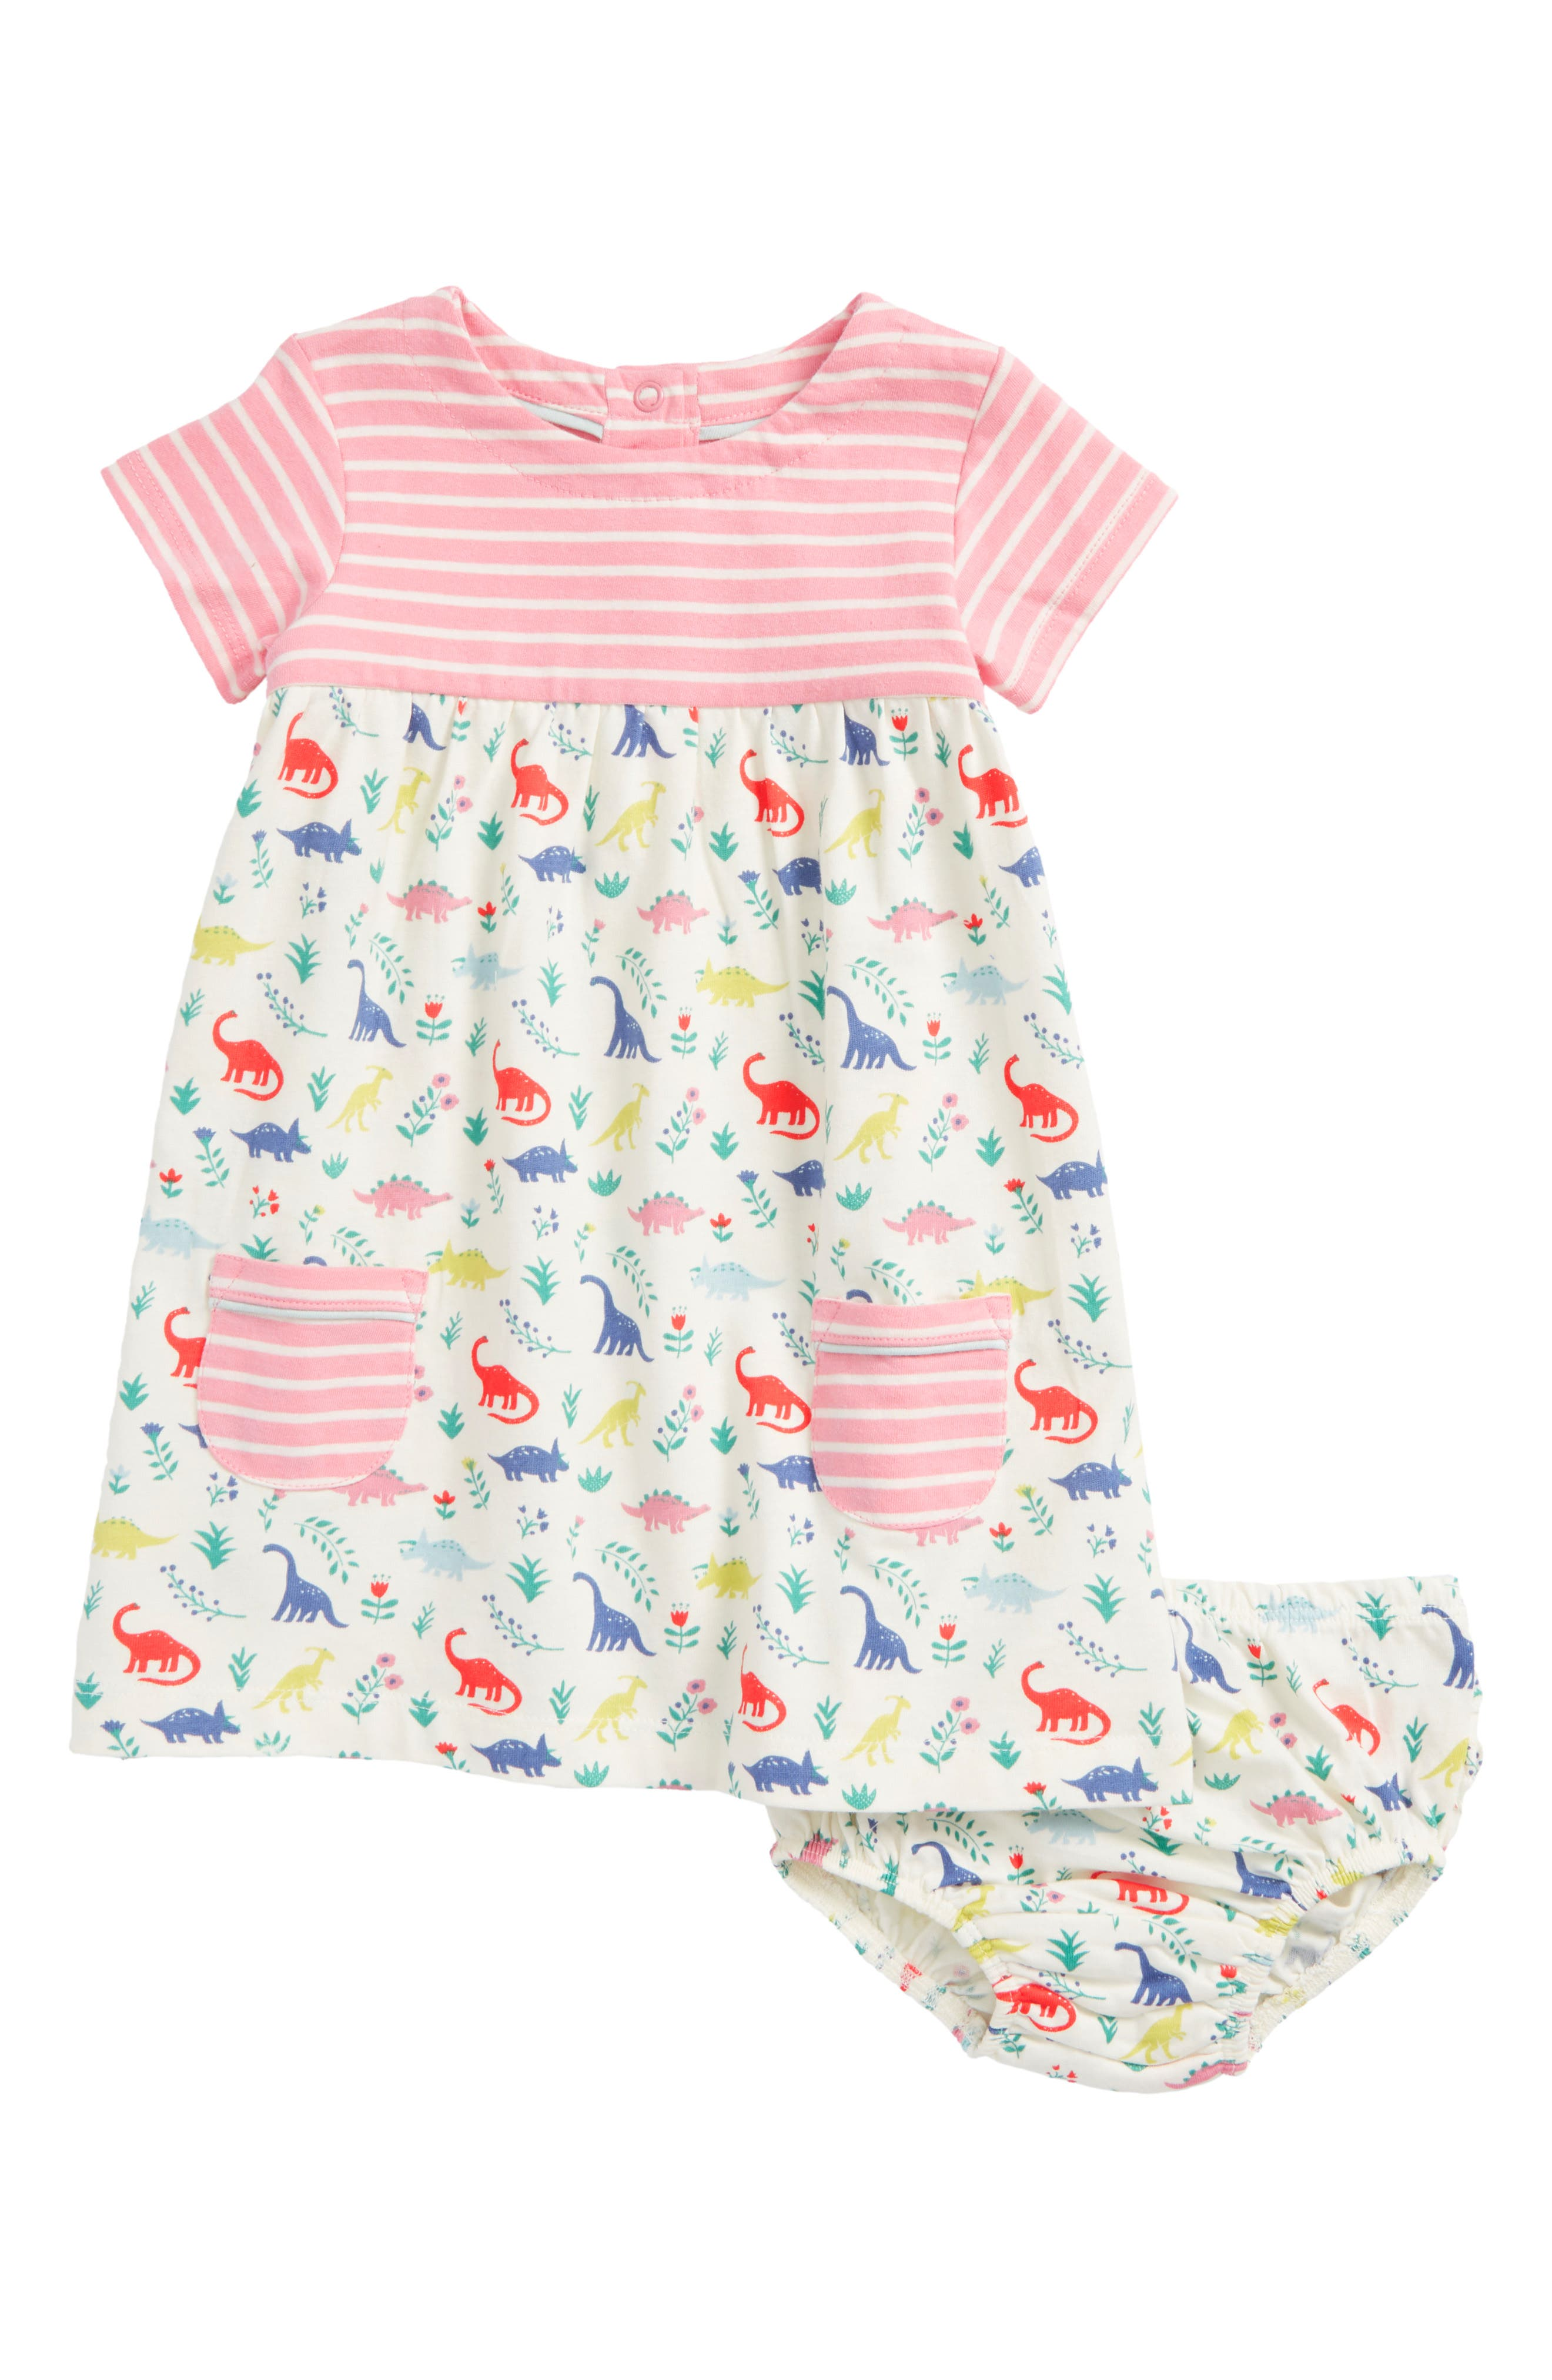 Hotchpotch Jersey Dress,                         Main,                         color, Multi Dino Floral